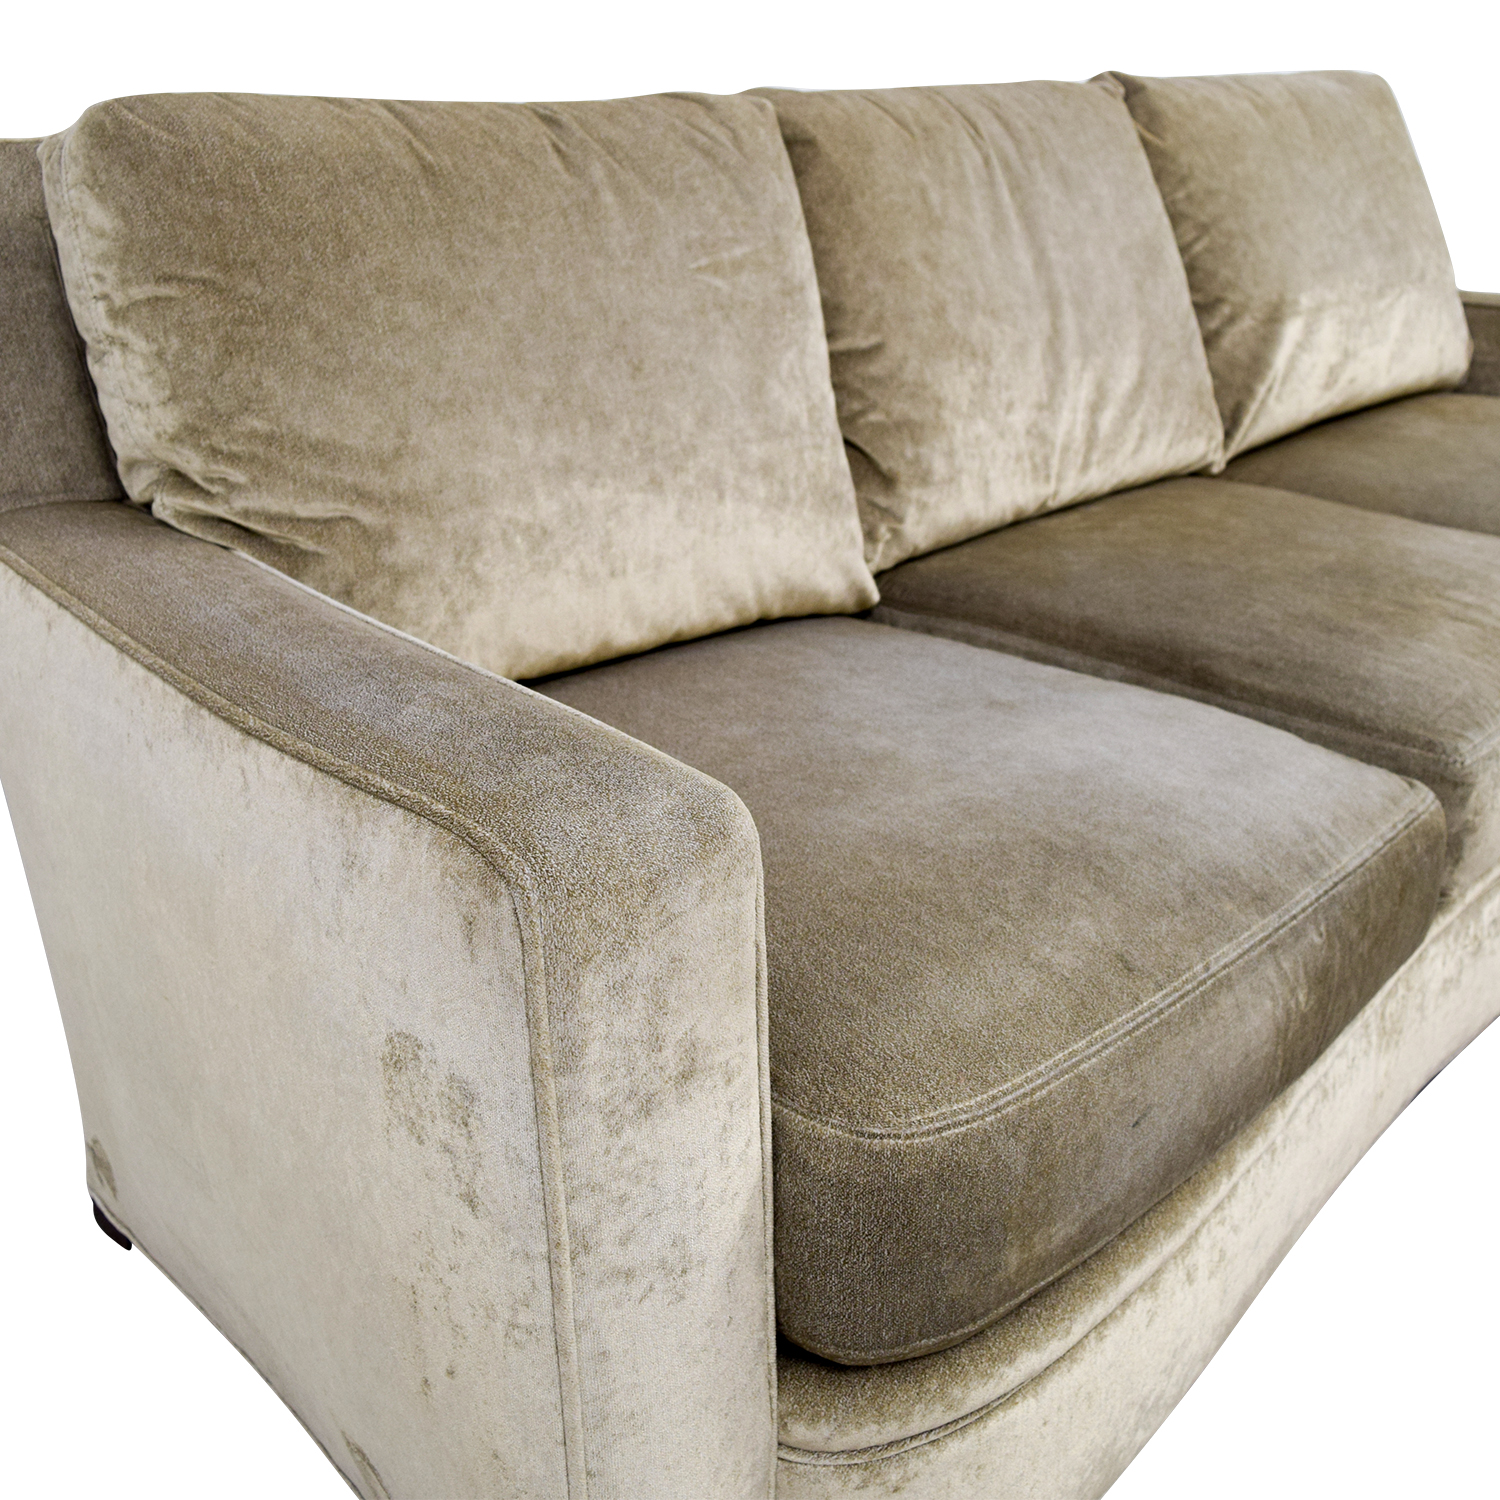 Kravit Furniture Beige Three-Cushion Curved Sofa / Sofas